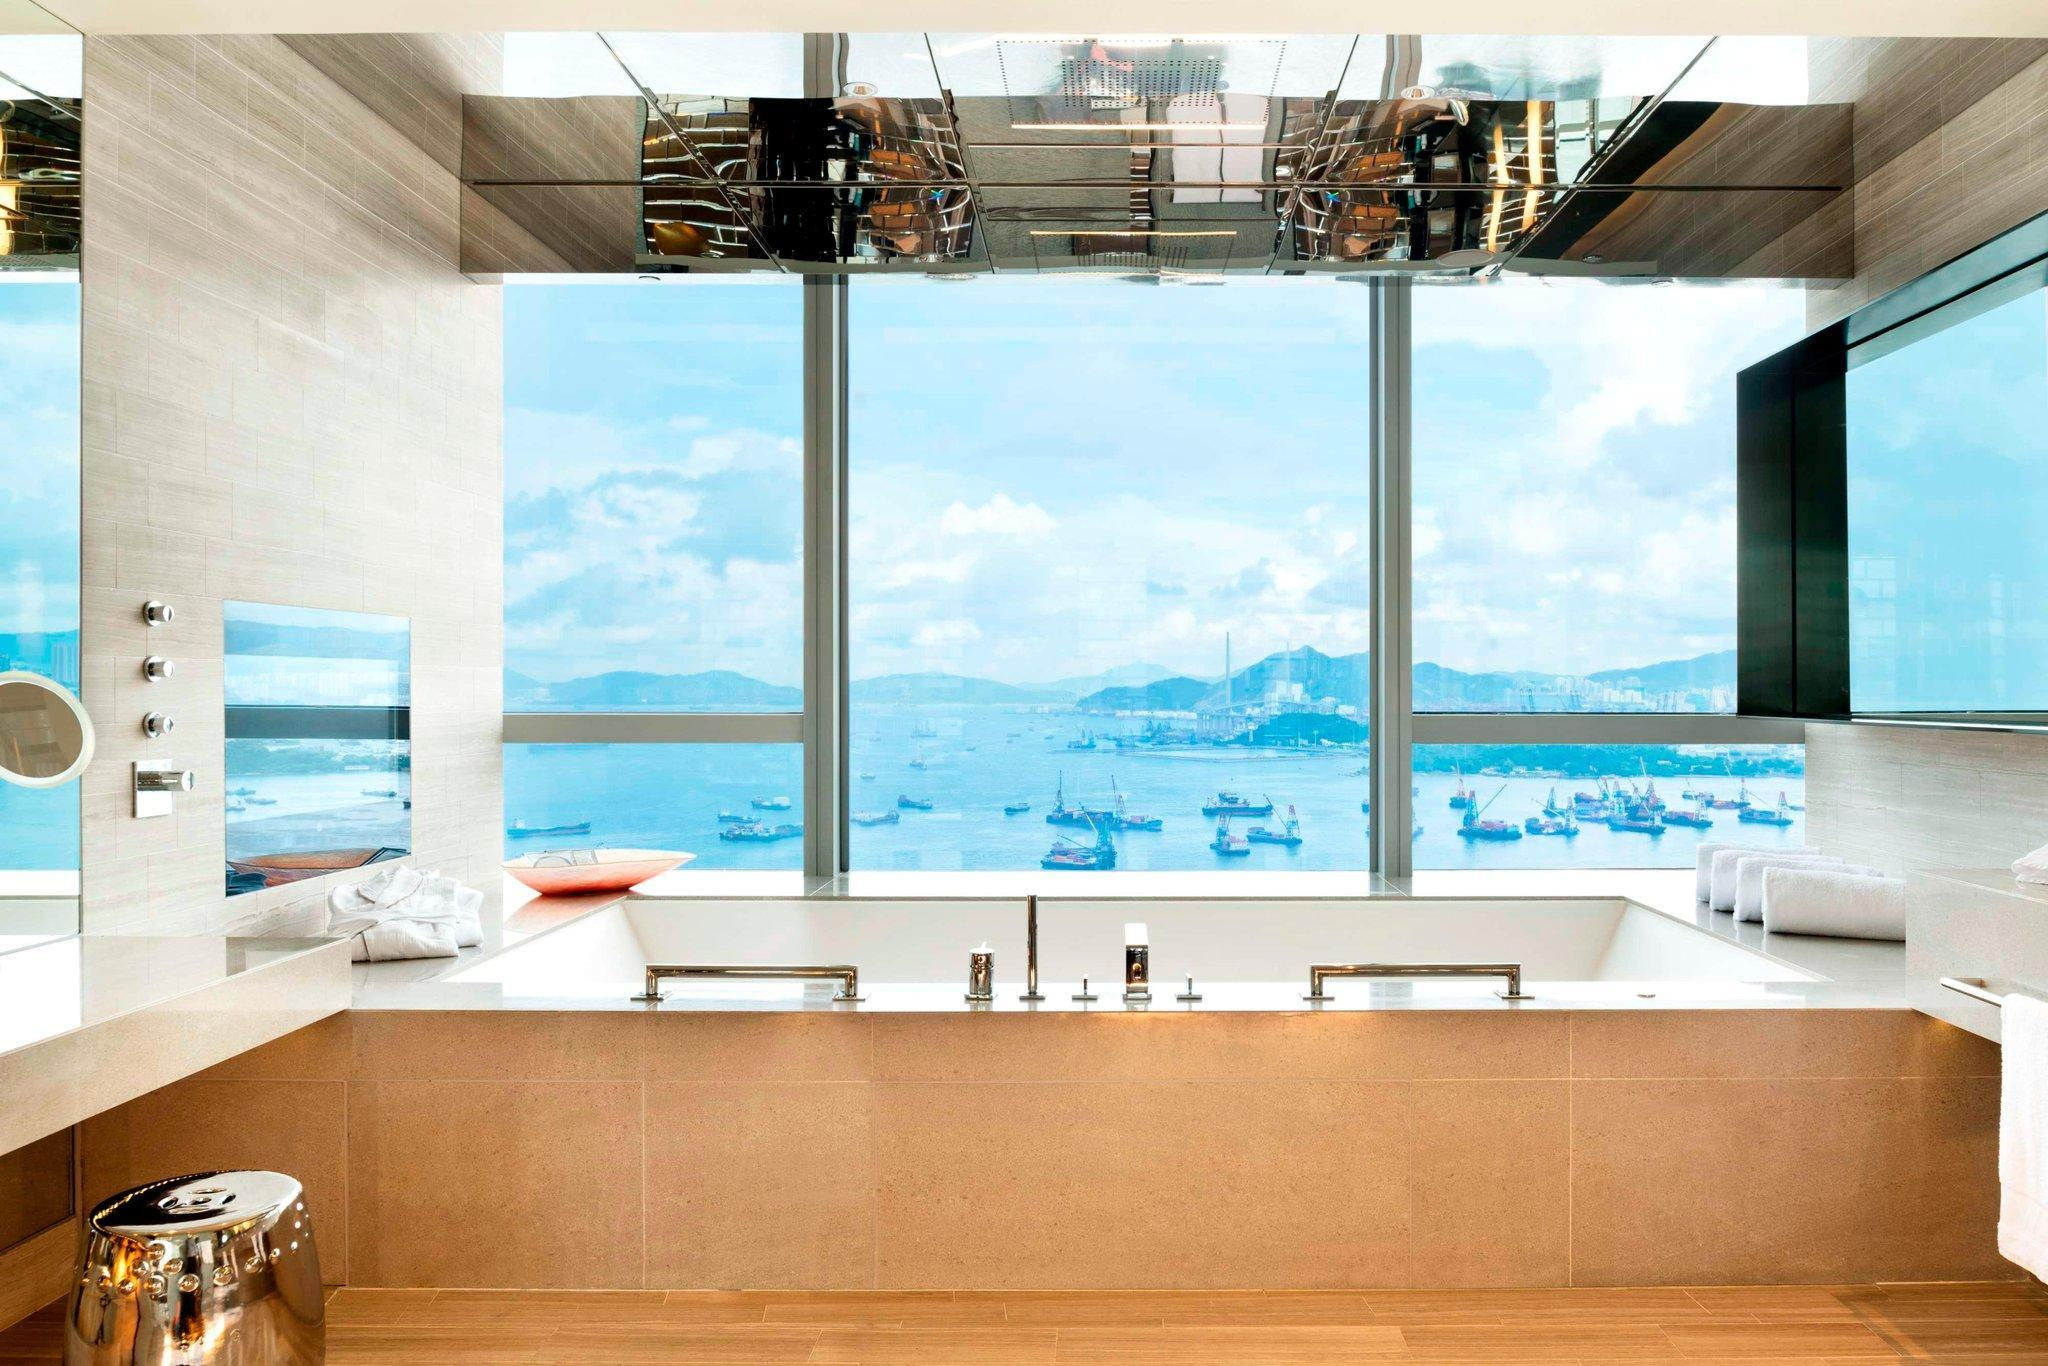 Extreme WOW, Suite, 1 King, Skyline view, Whirlpool